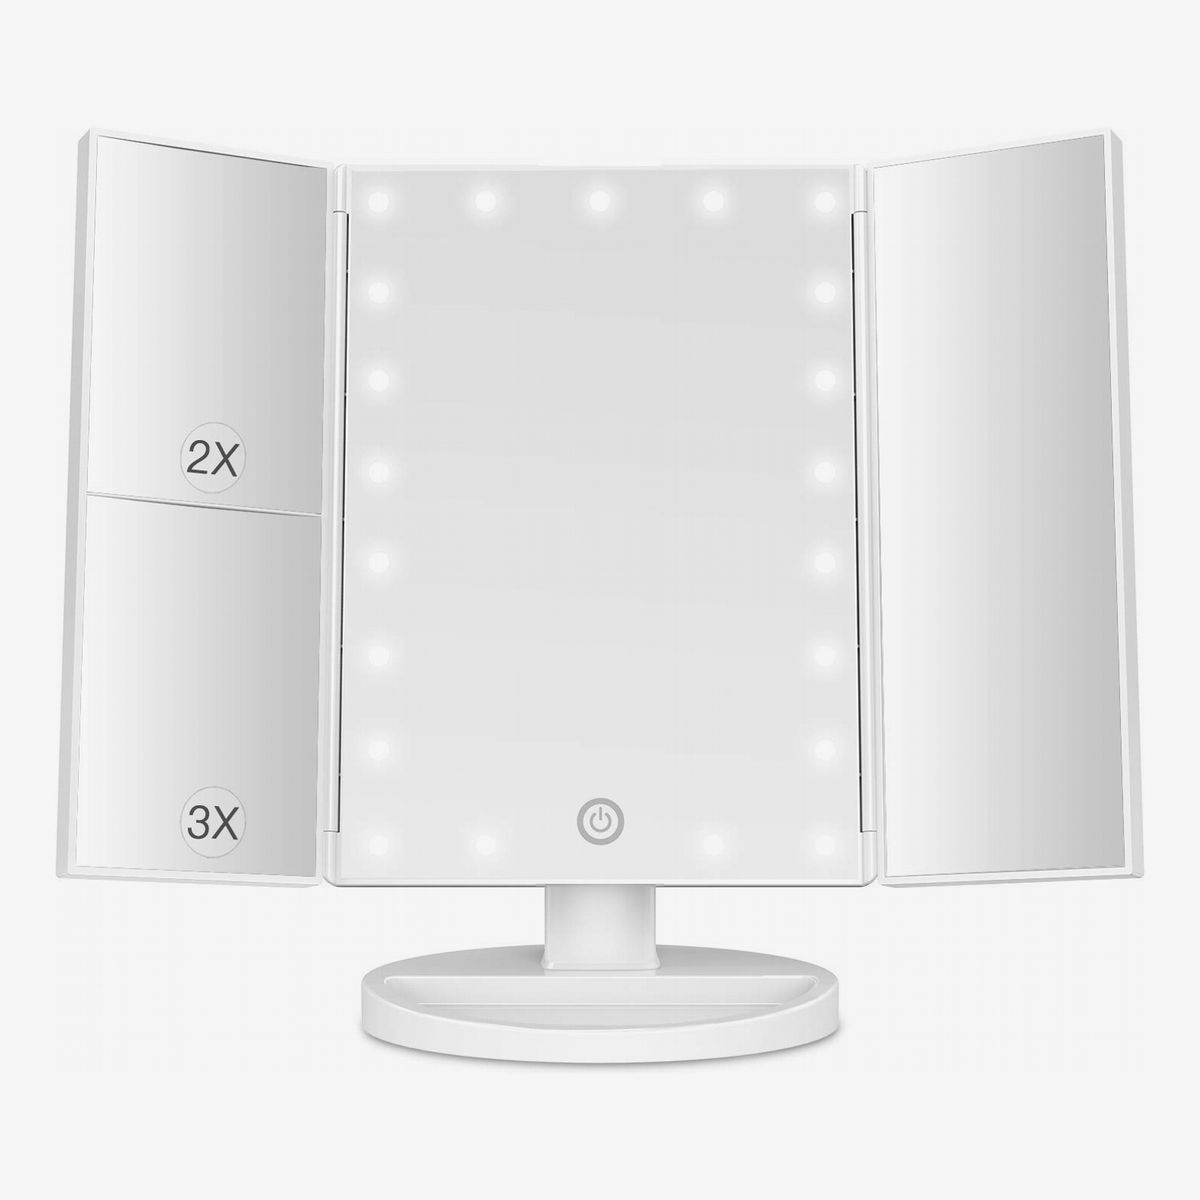 13 Best Lighted Makeup Mirrors 2021